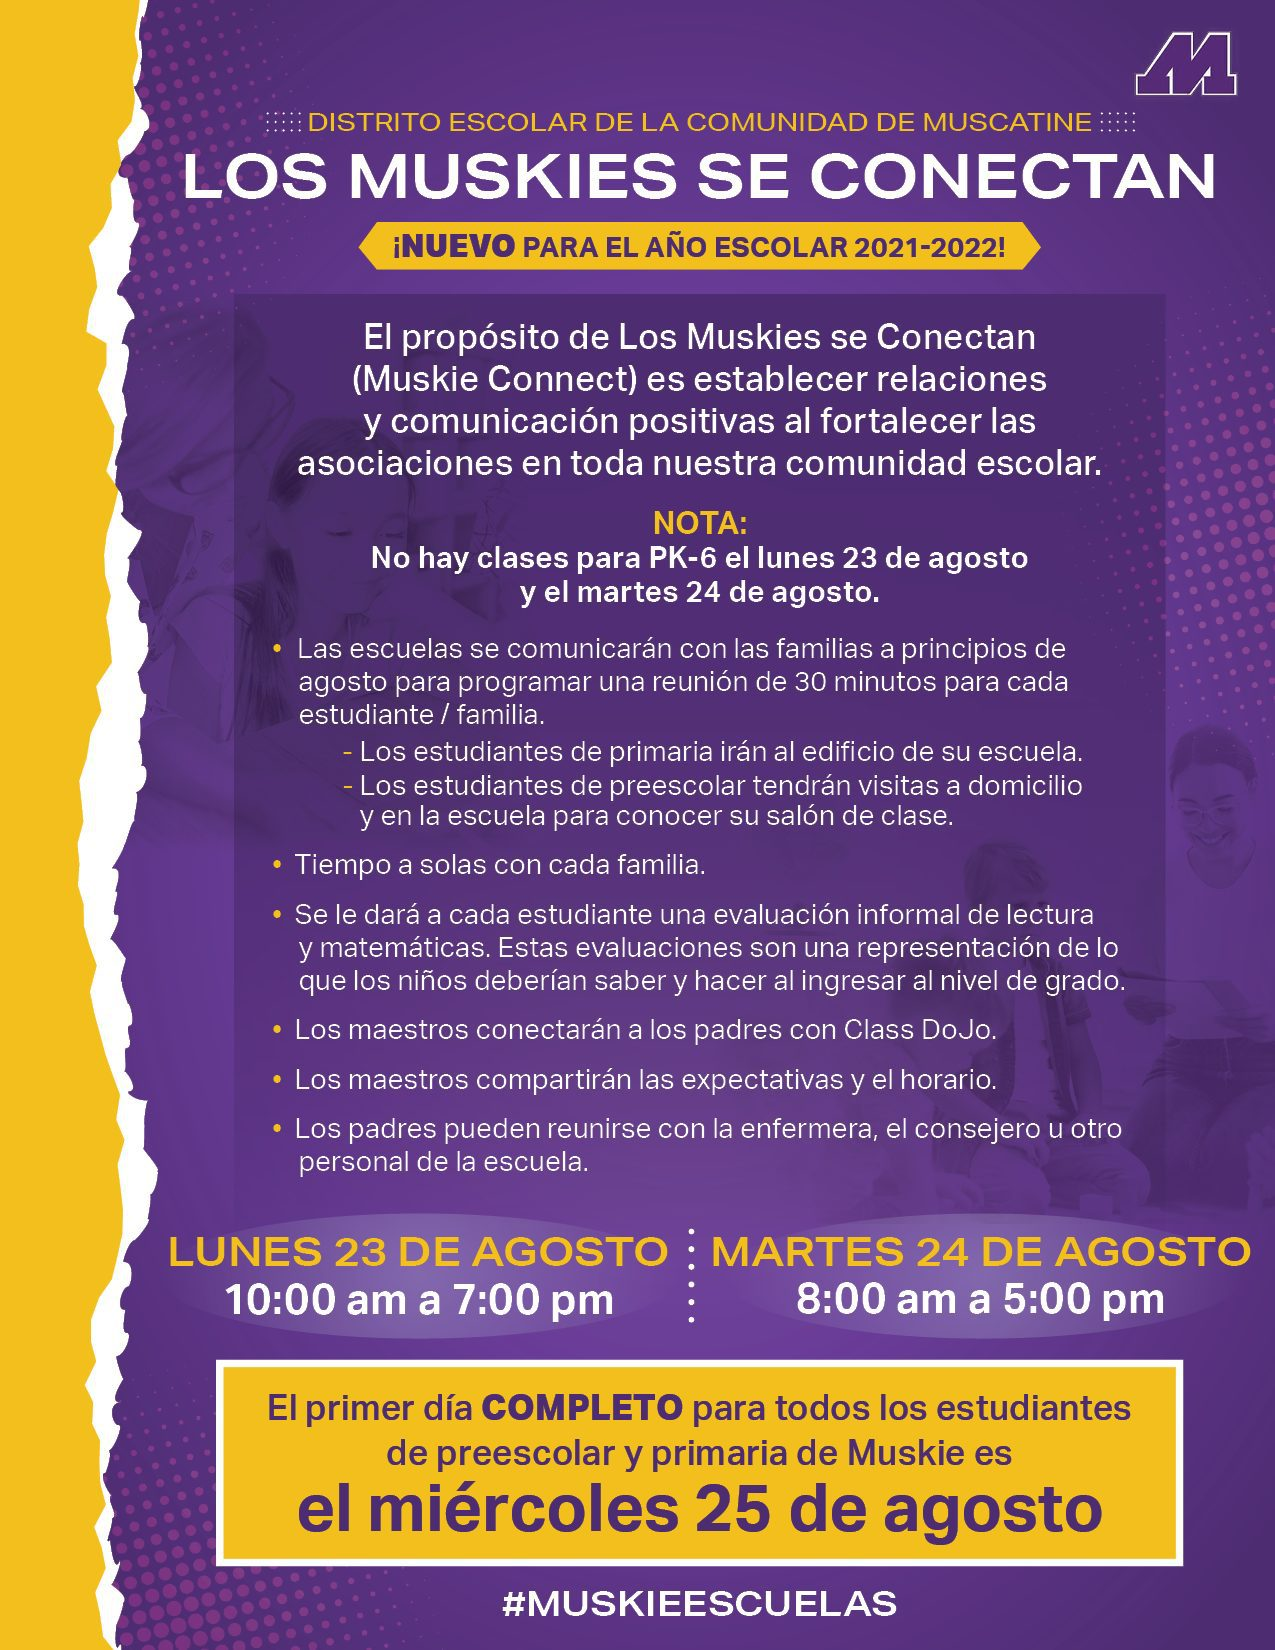 Muskie Connect new back to school plan for preschool to 6th grade students. This is the flyer that outlines that in Spanish.